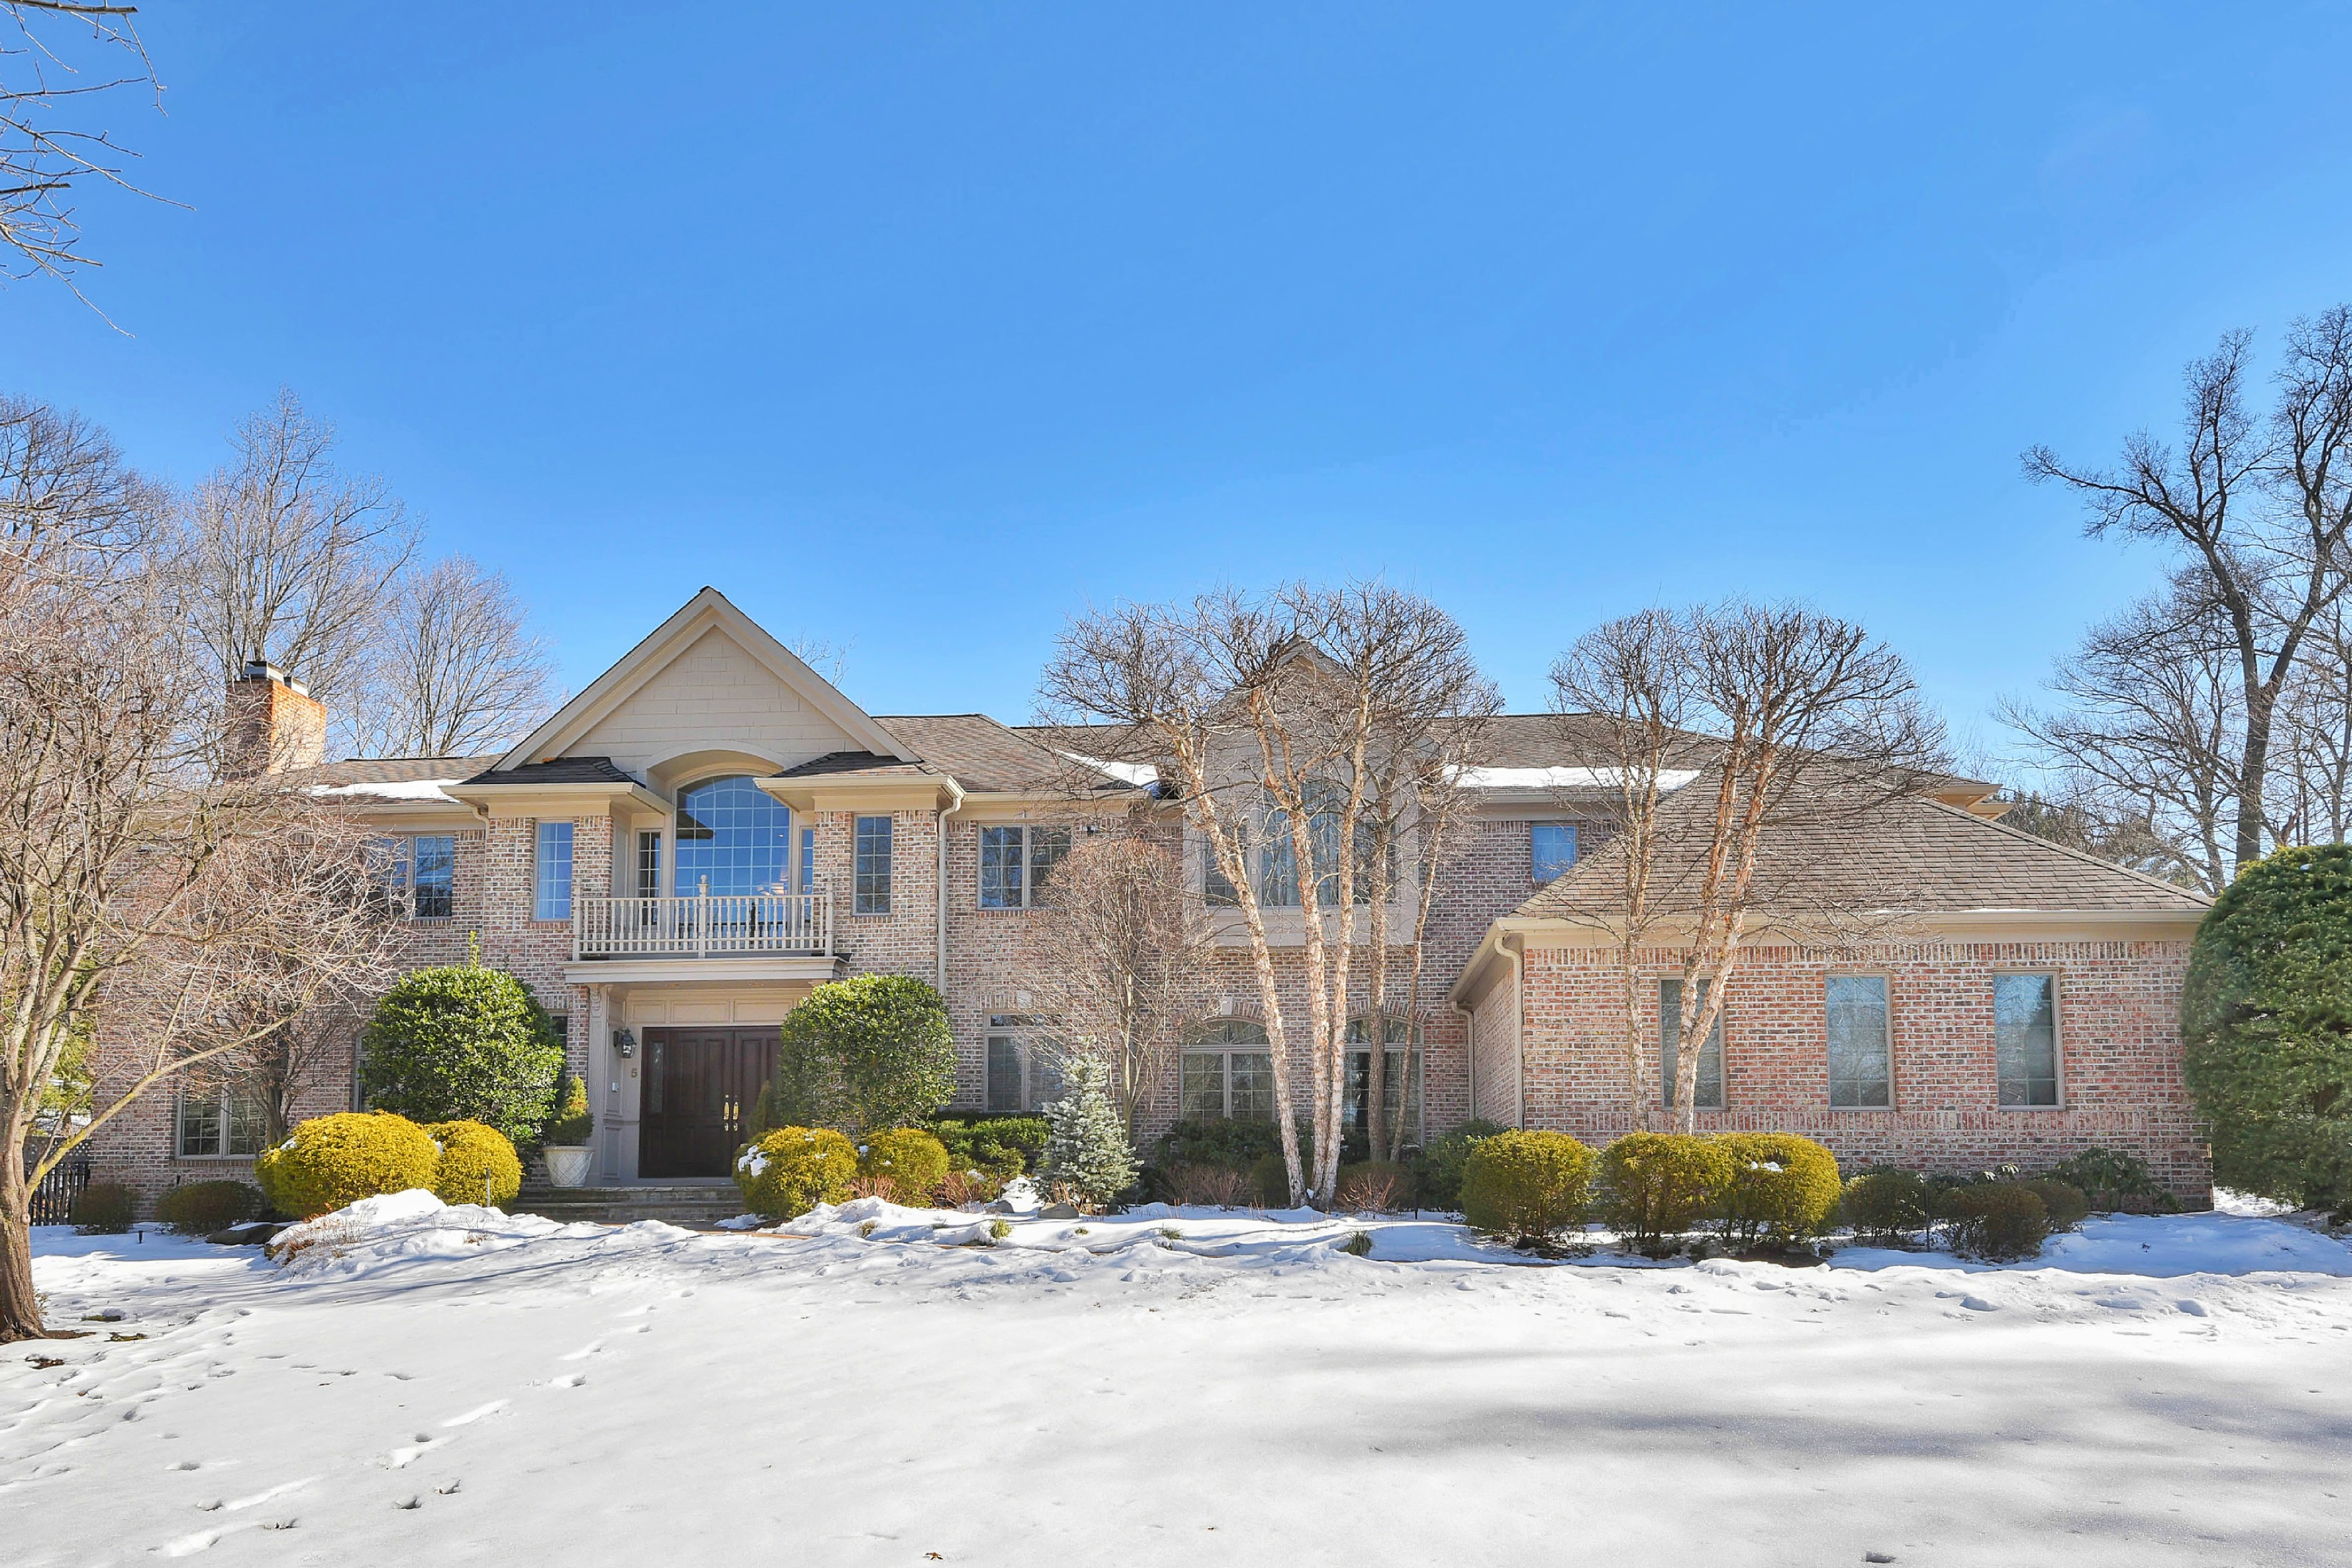 Single Family Home for Sale at Timeless & Classic 5 Millers Xing Tenafly, New Jersey 07670 United States